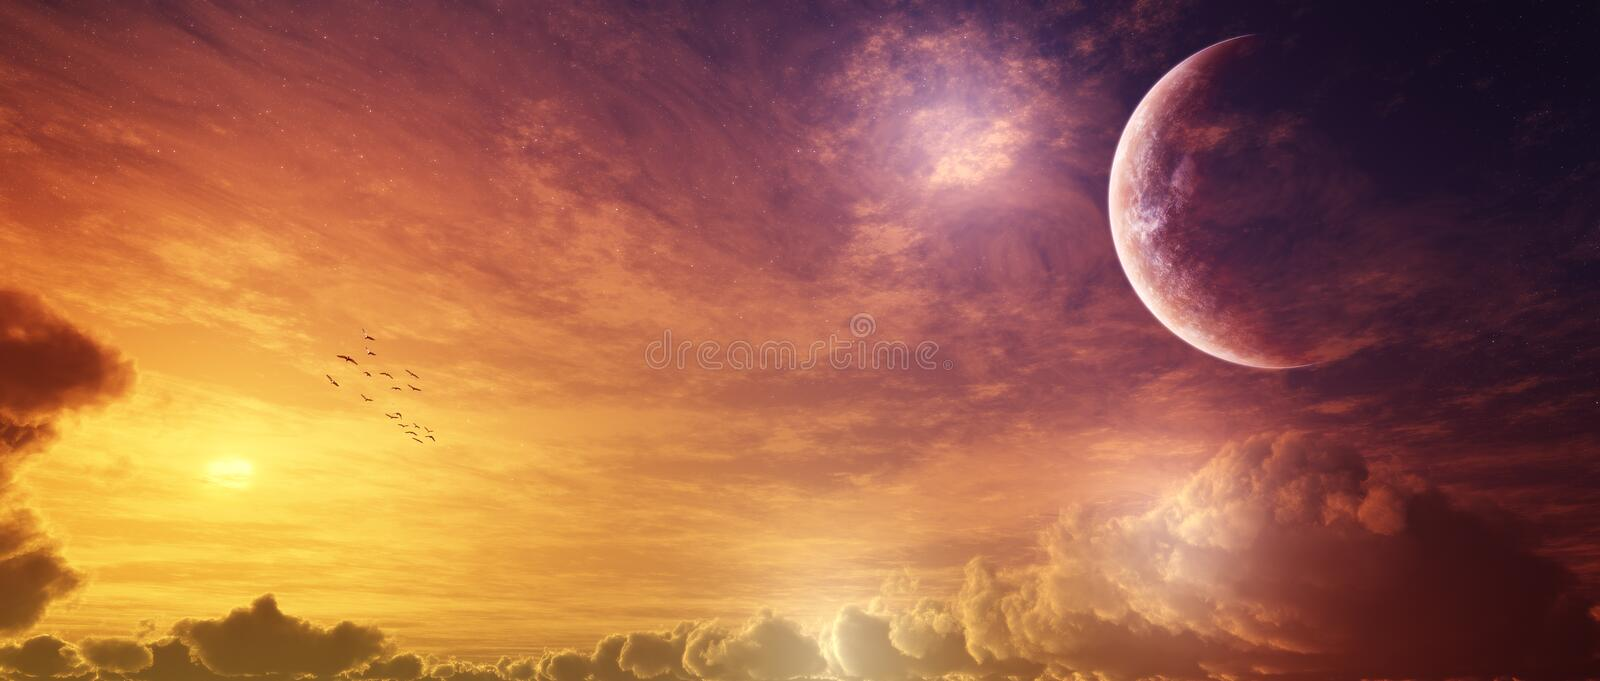 Epic Sunset Panorama With Super Moon royalty free illustration